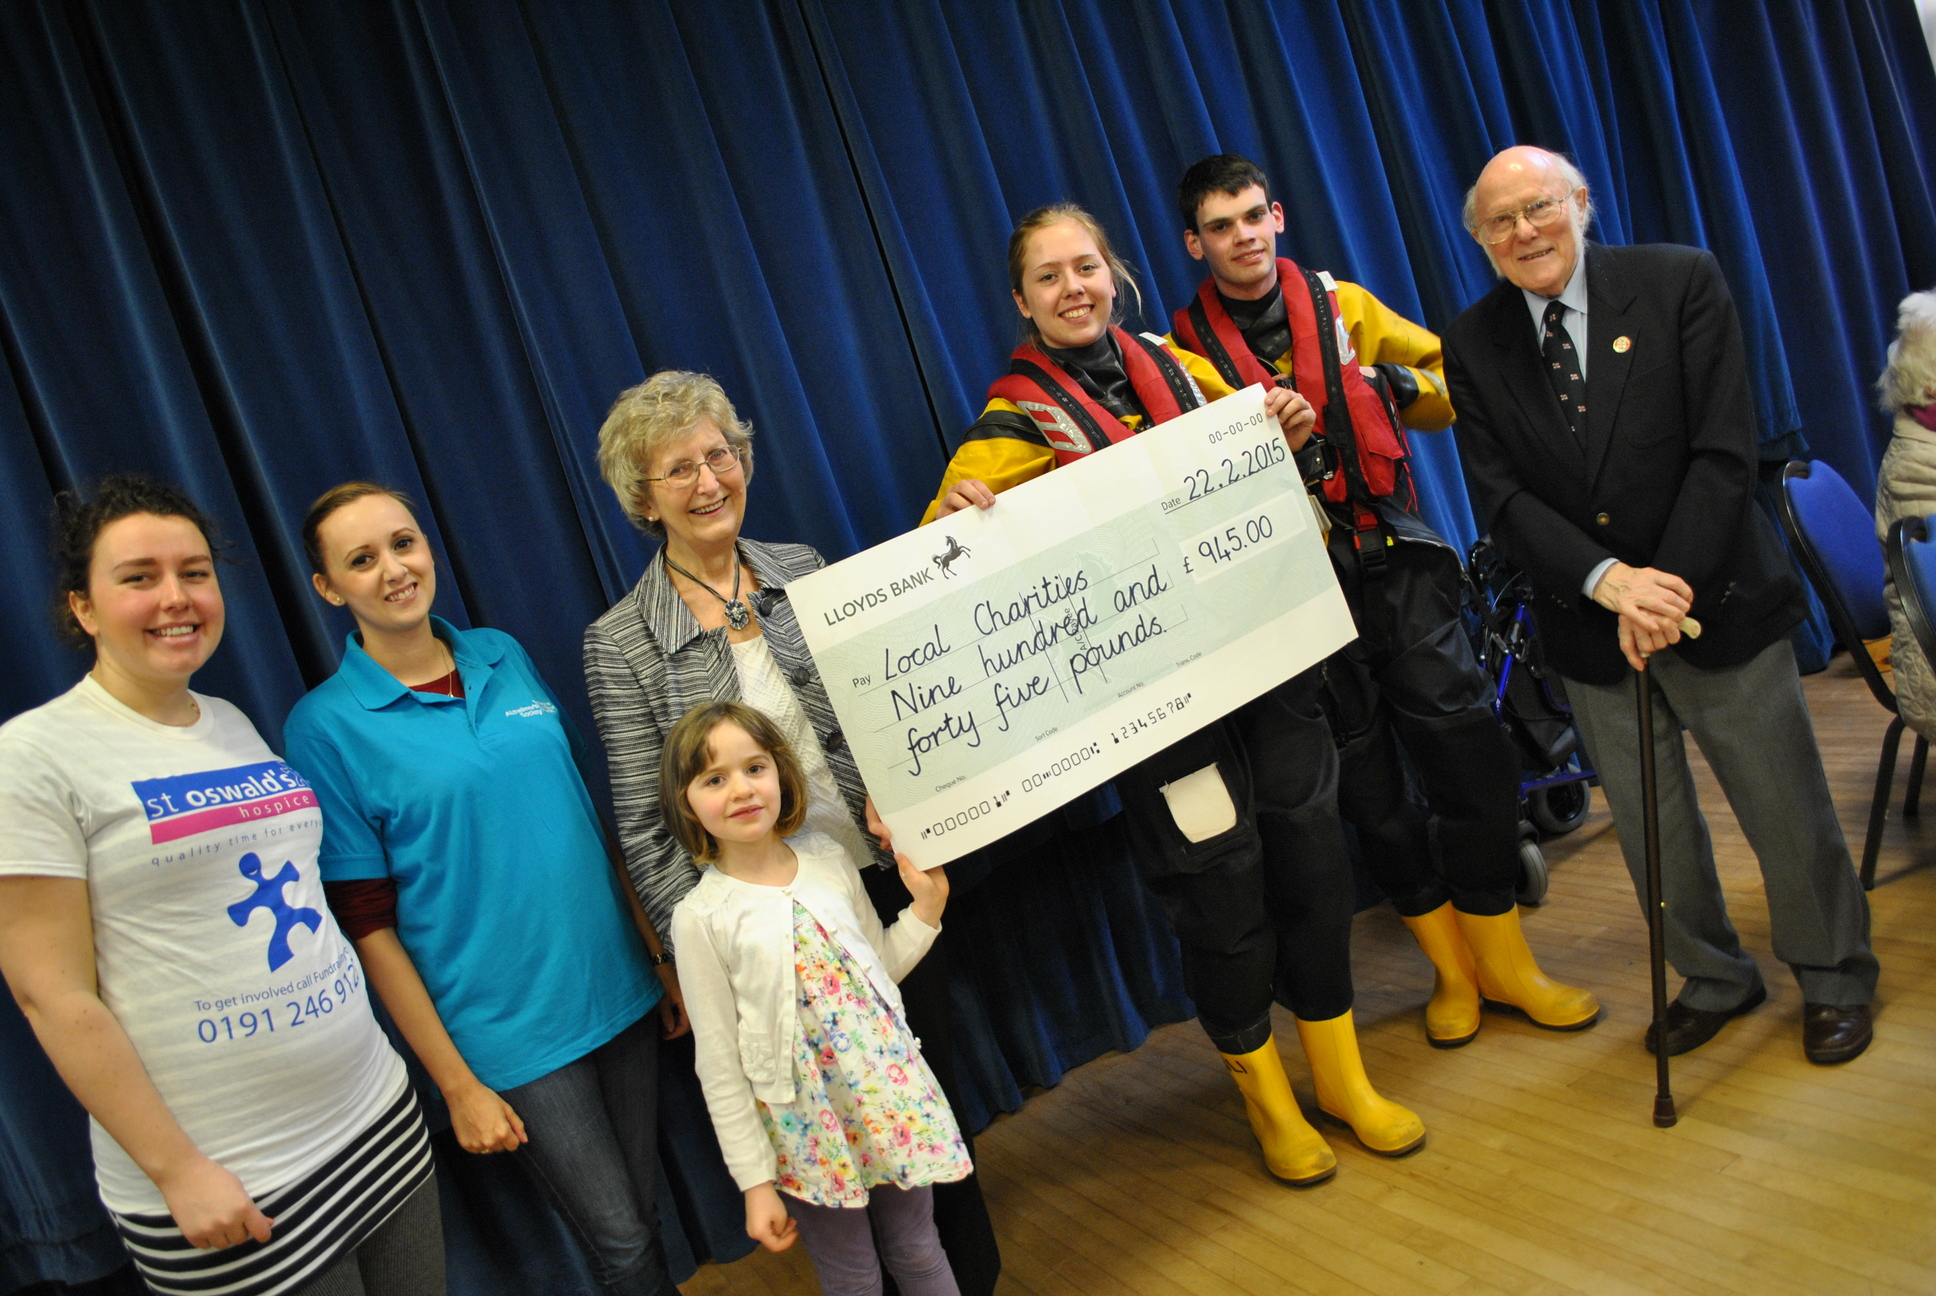 Our 2014 Charity presentation